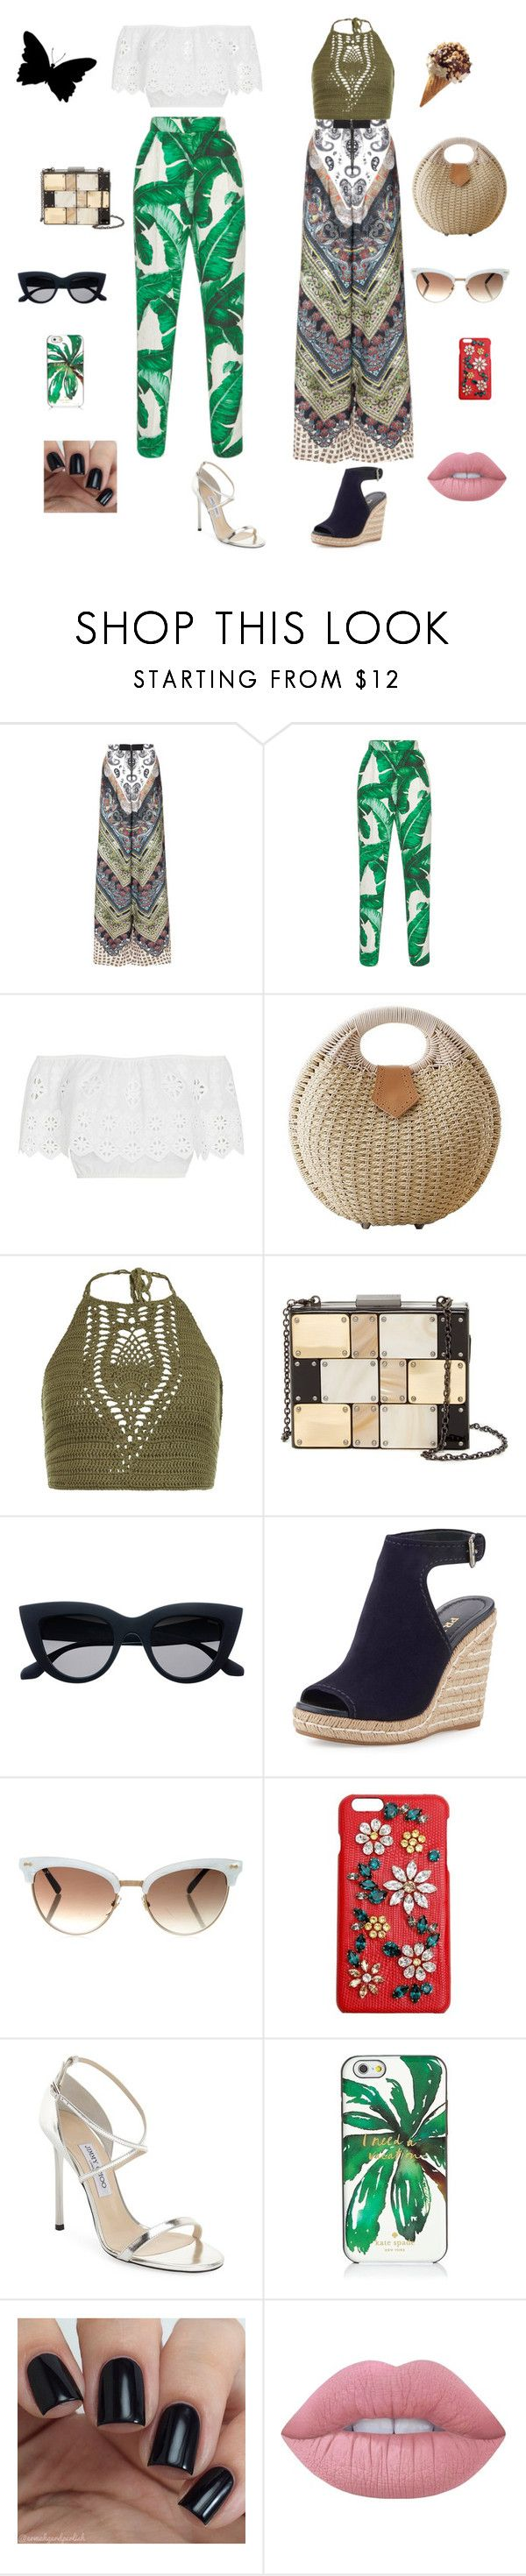 114 by malishevan on Polyvore featuring мода, Miguelina, New Look, Alice + Olivia, Dolce&Gabbana, Jimmy Choo, Prada, Sondra Roberts, Gucci and Kate Spade